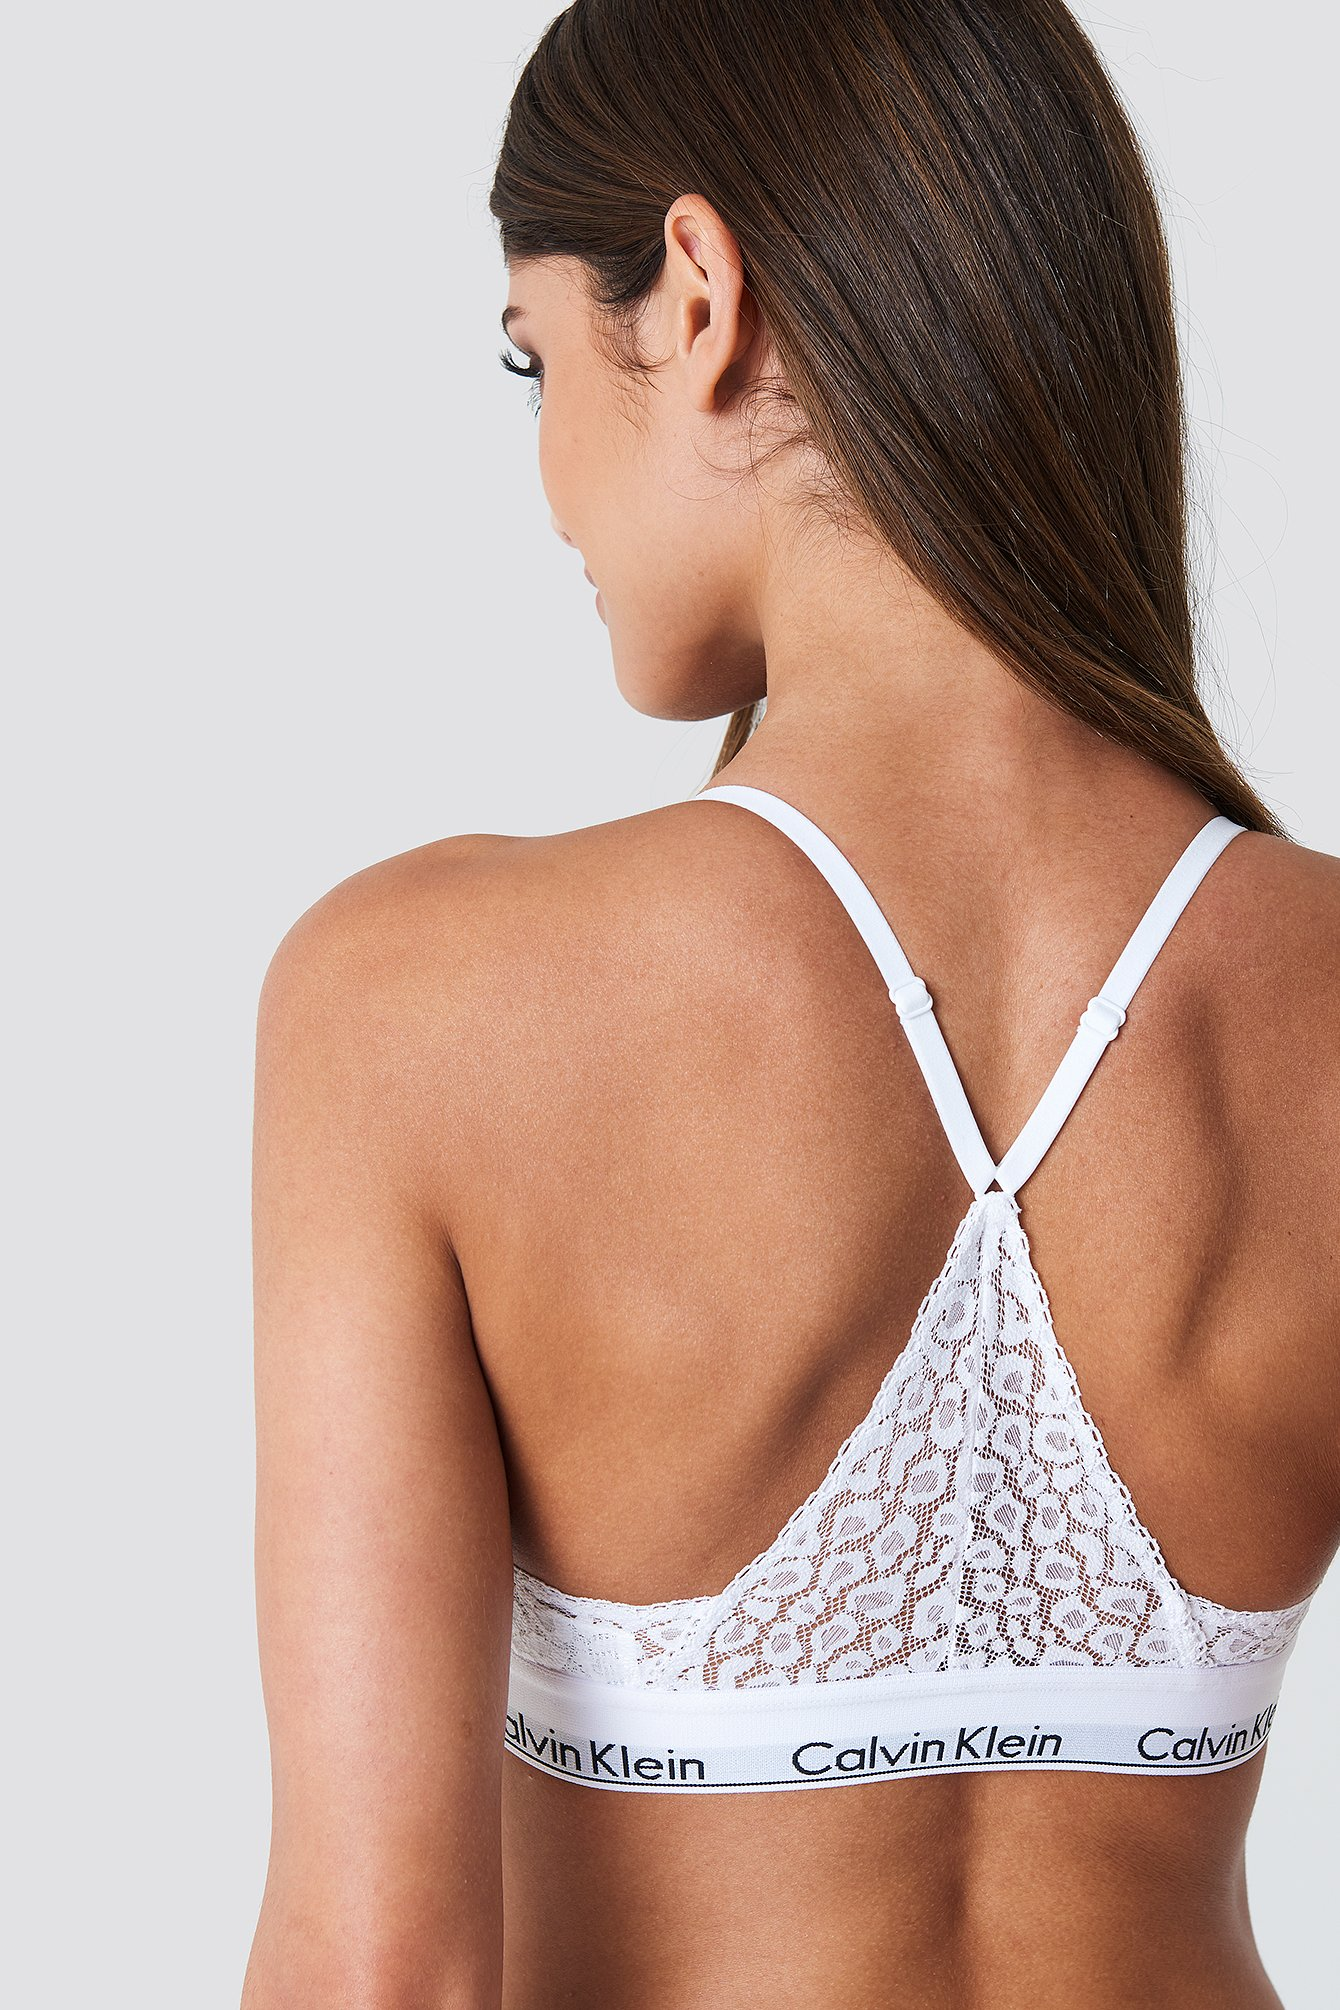 Calvin Klein Triangle Lace Bra - White